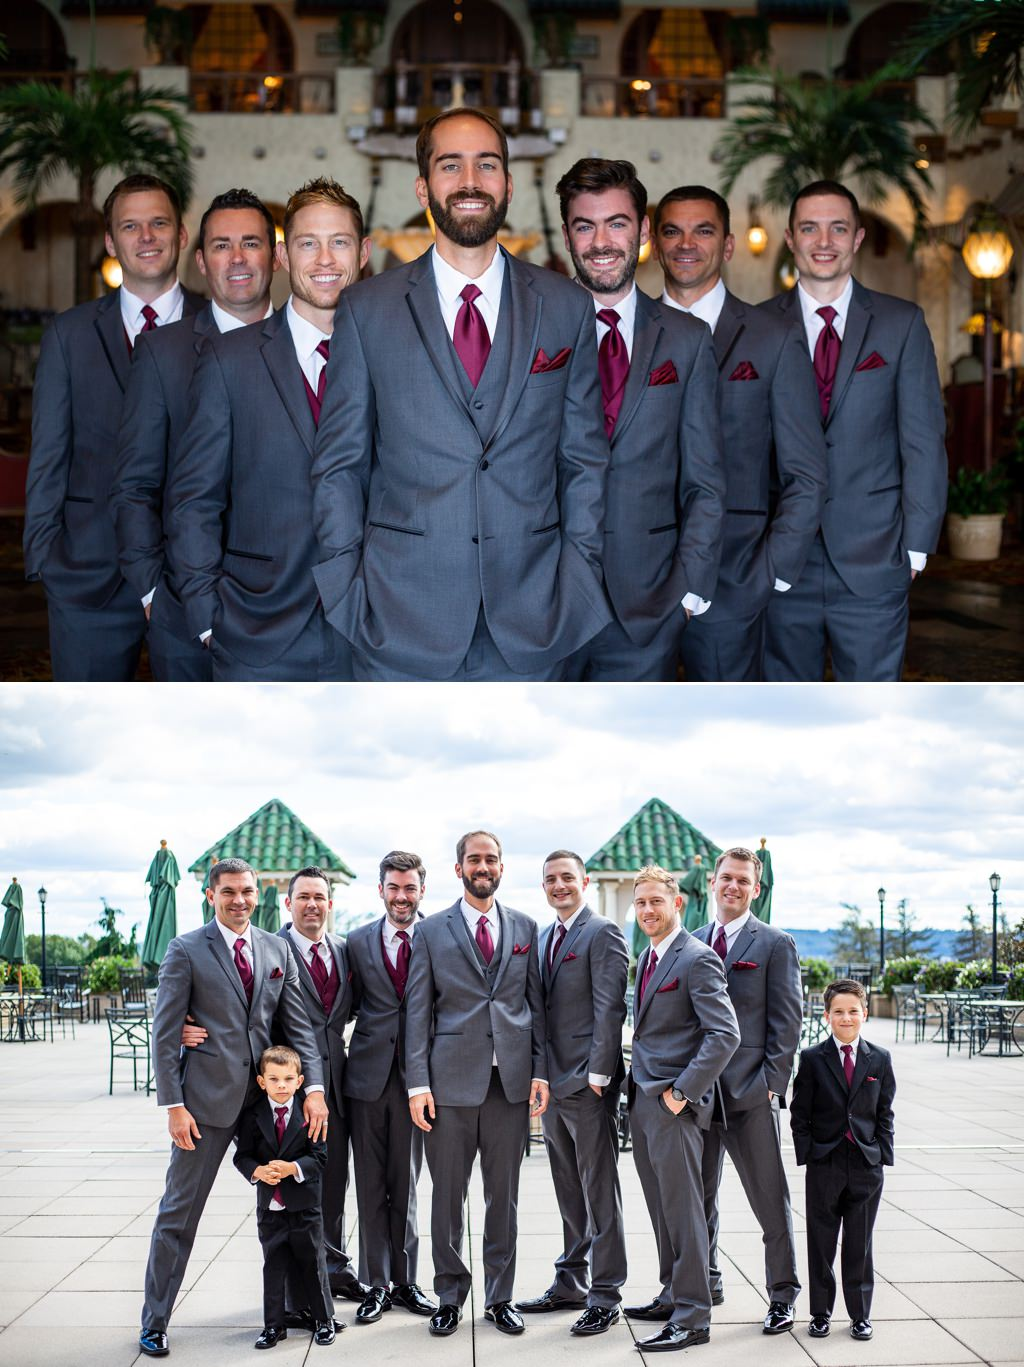 A groom and groomsmen at the wedding at The Hotel Hershey